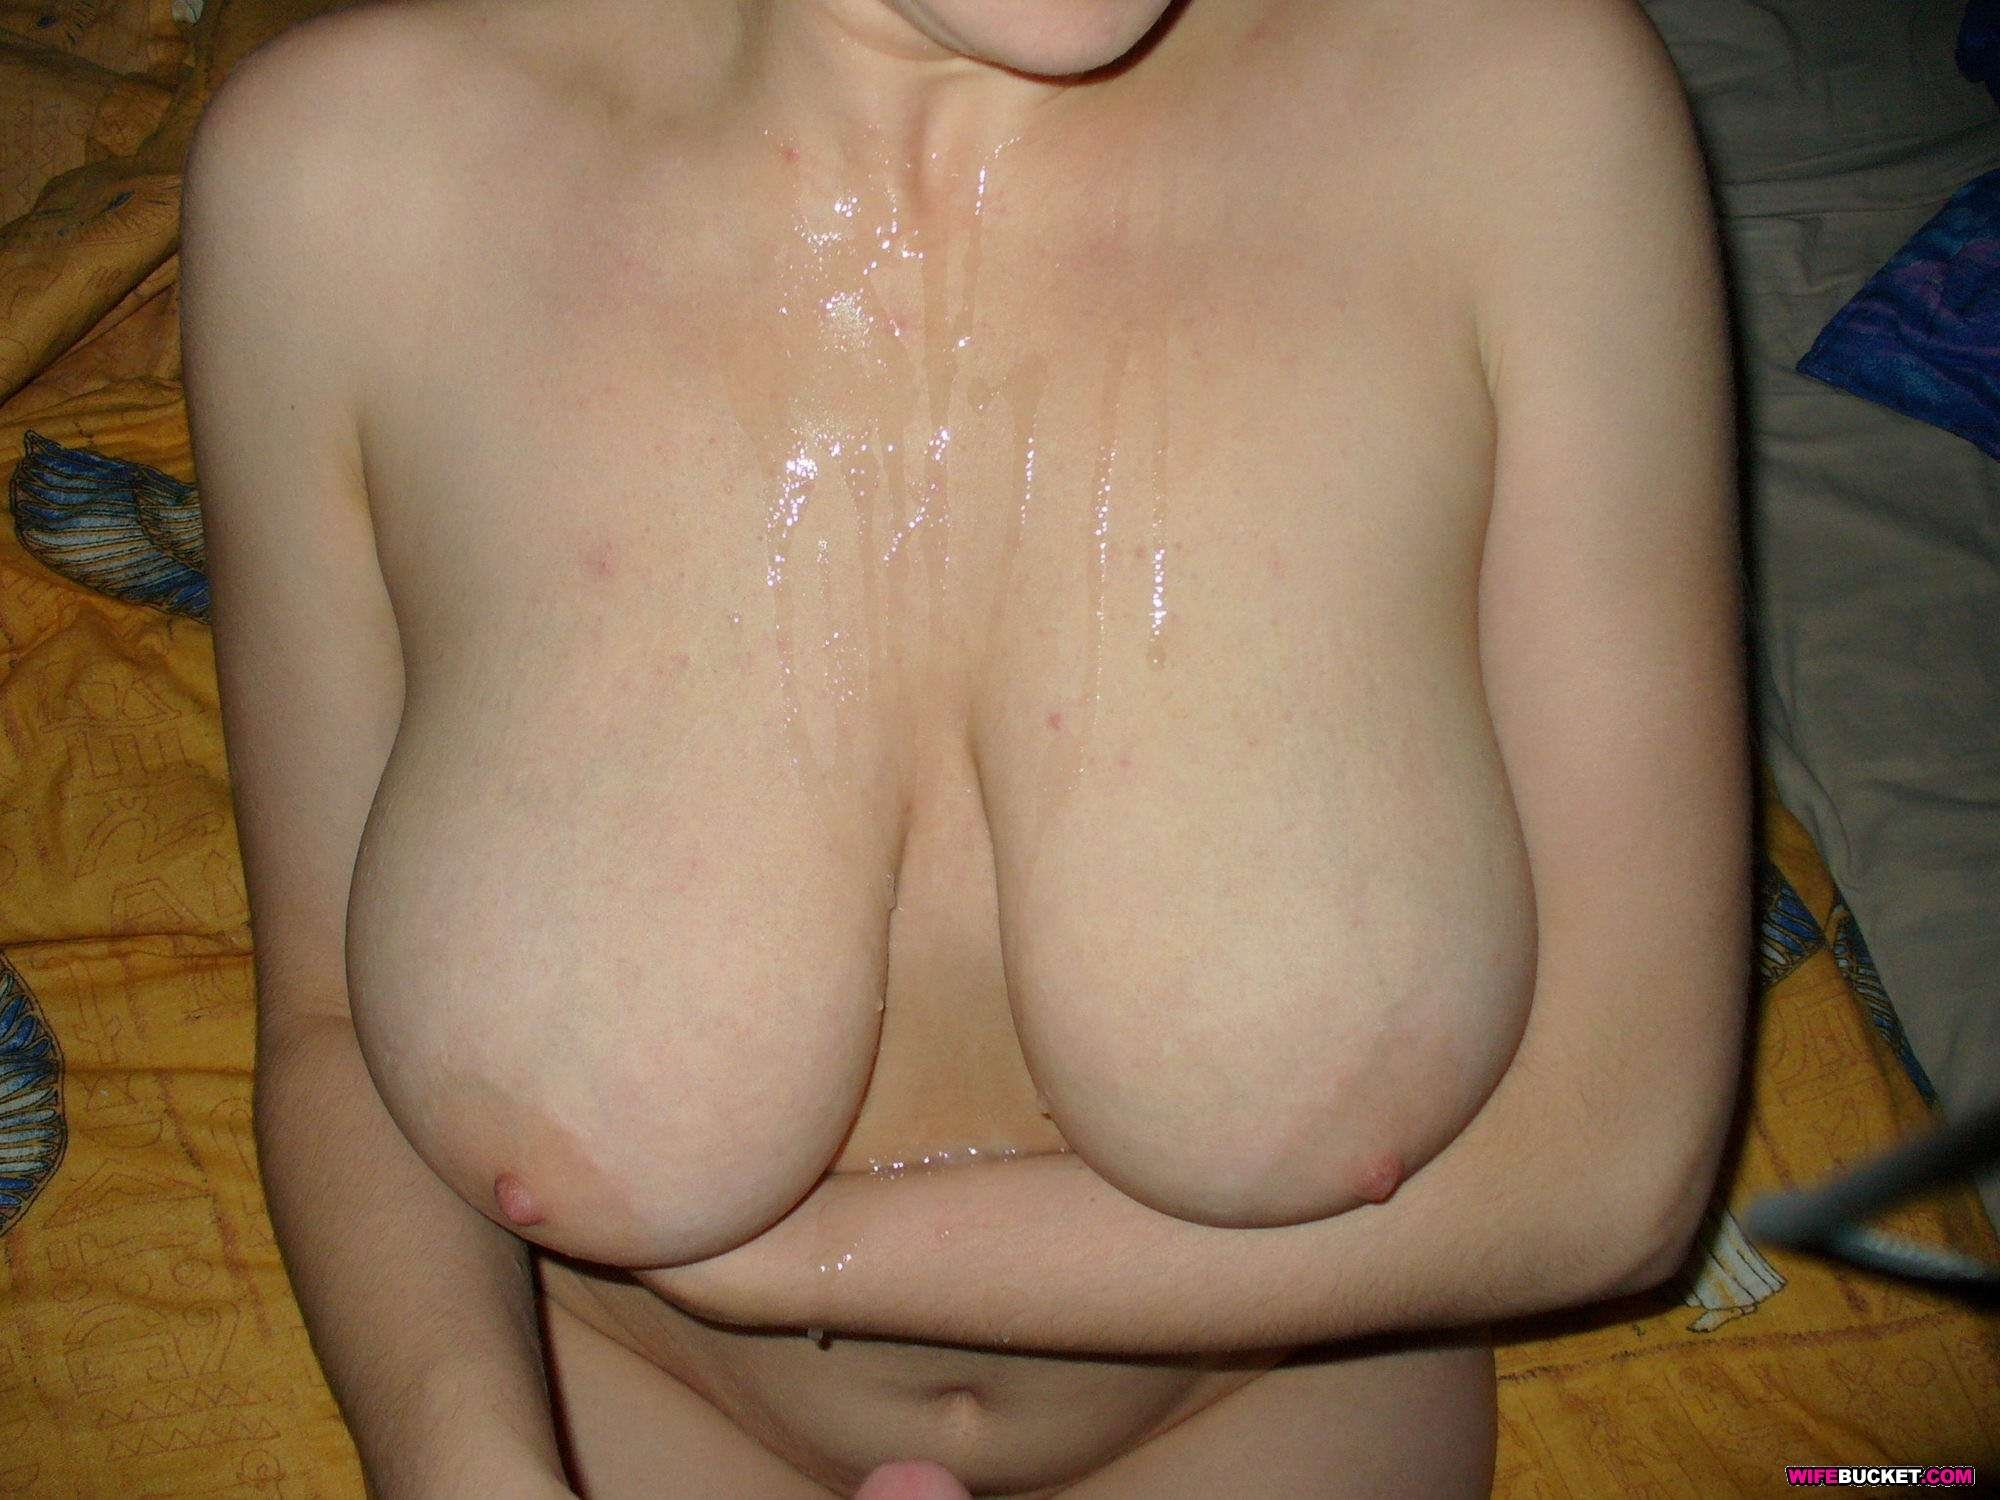 Free nudist hd Amatures gone wild pussy